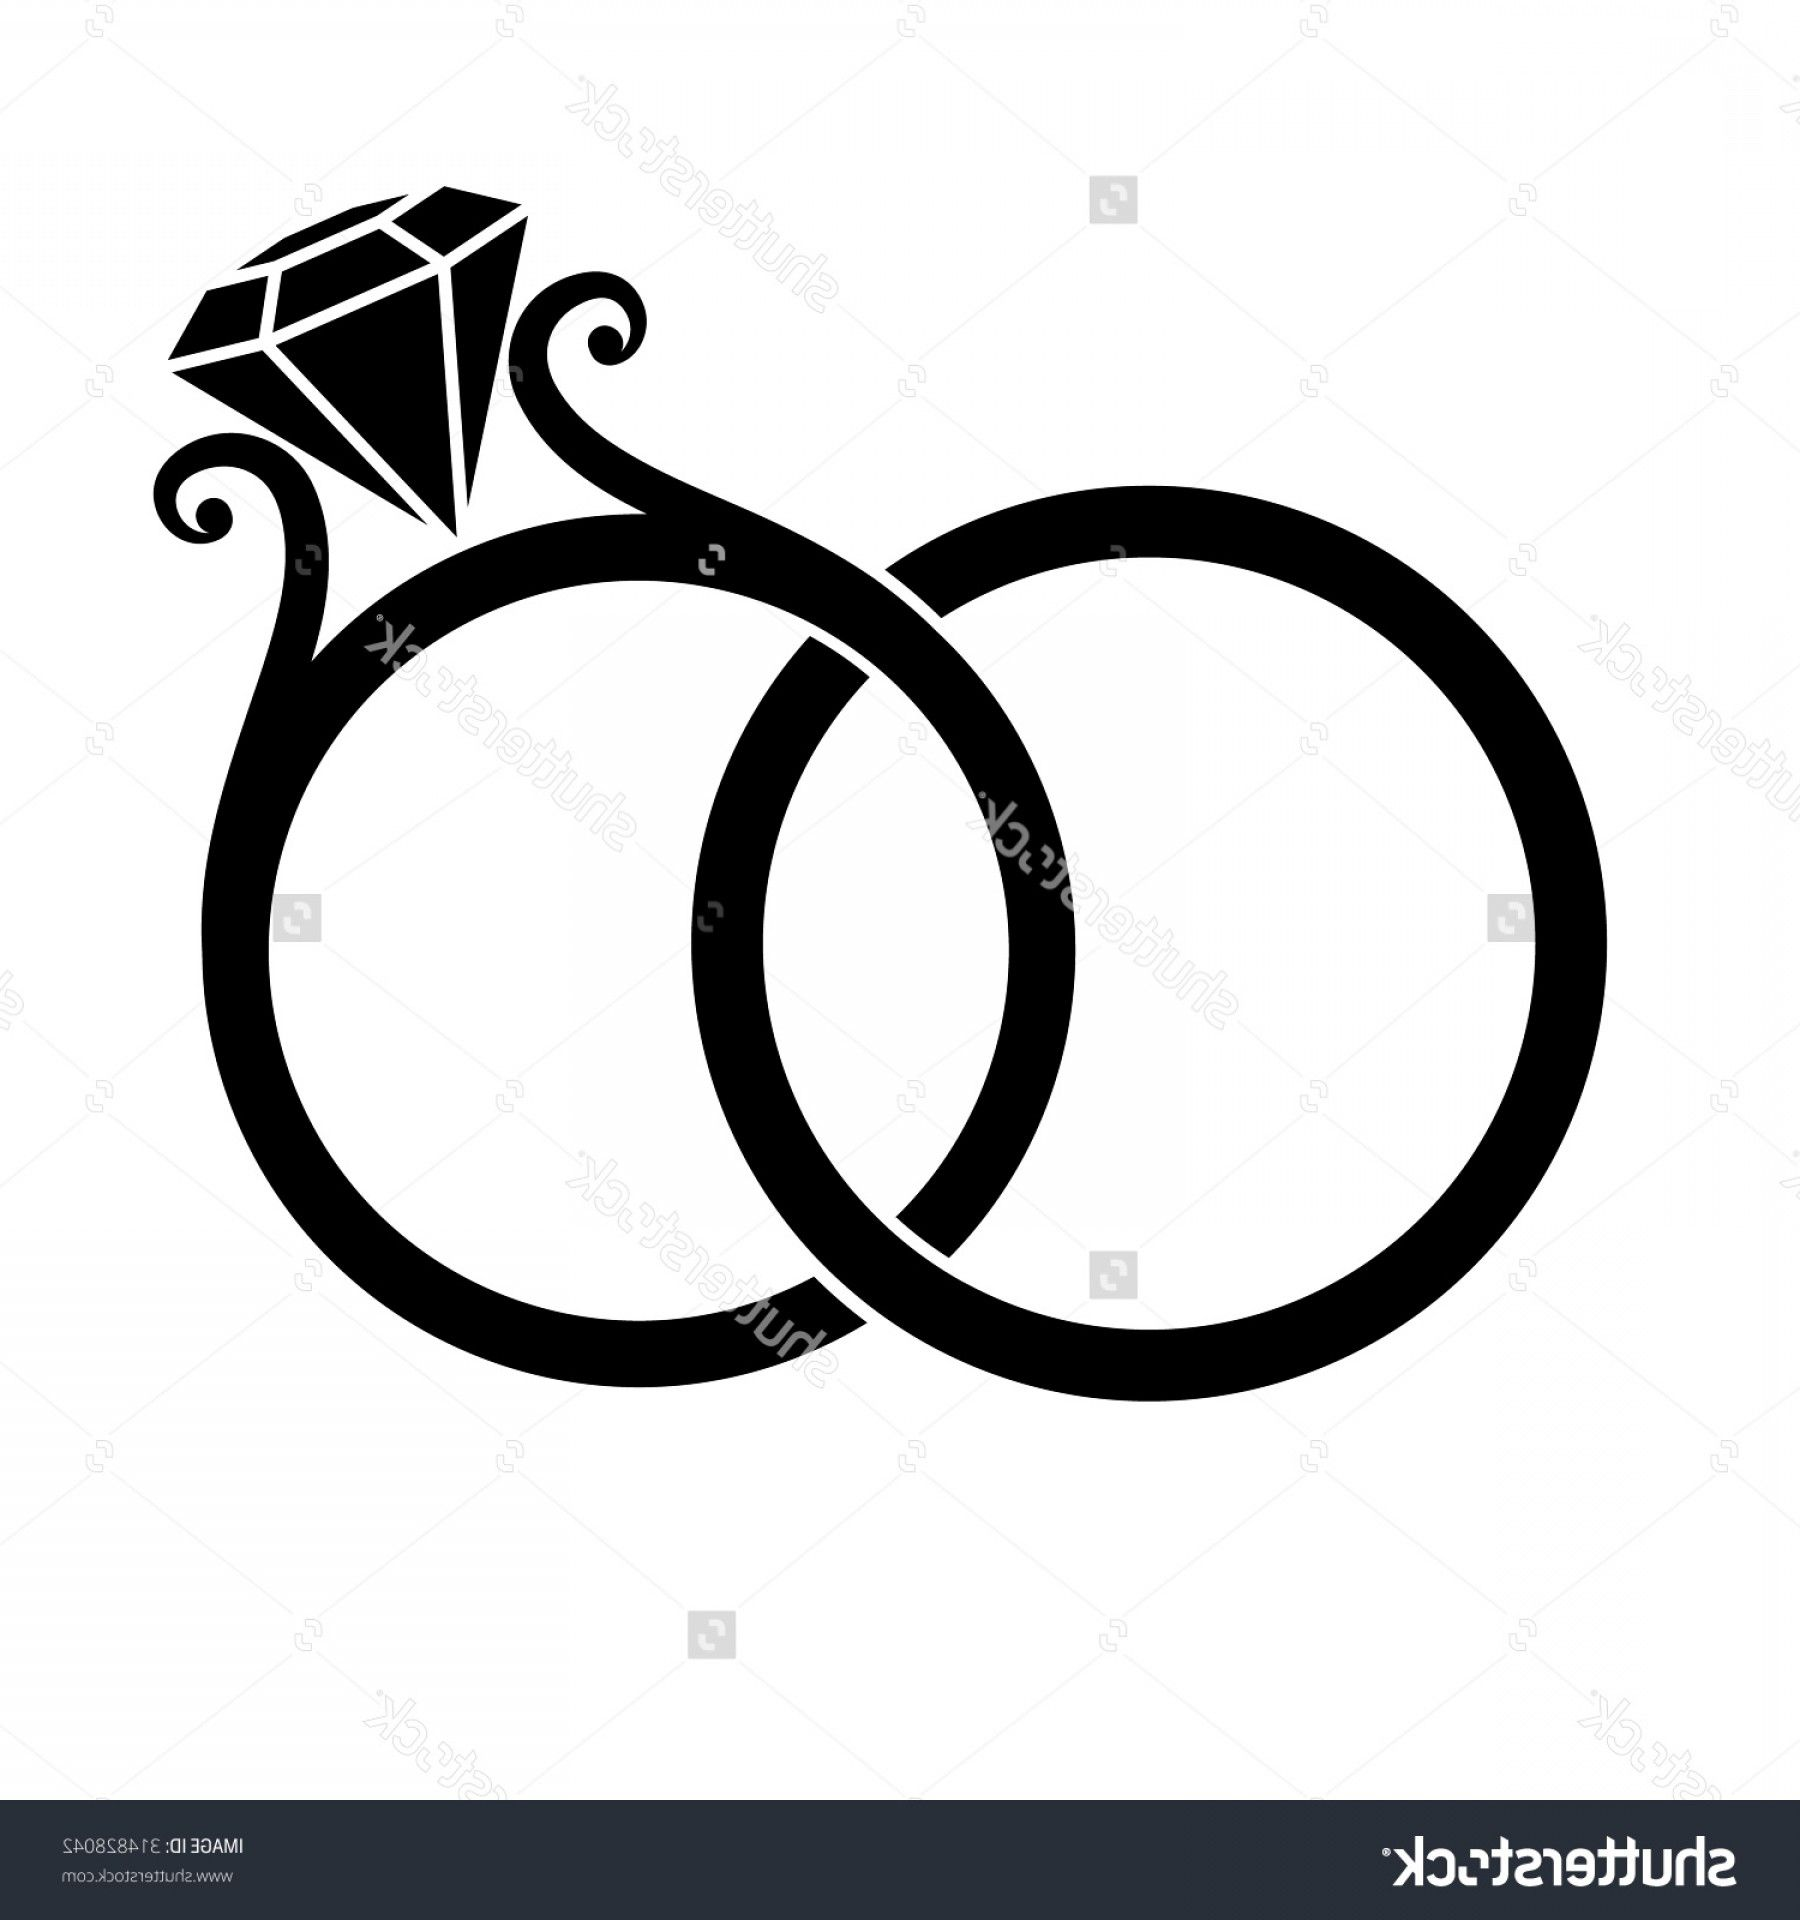 Weddings bands clipart graphic freeuse library Wedding Clip Art Vector Graphics: Bride And Groom Silhouette ... graphic freeuse library